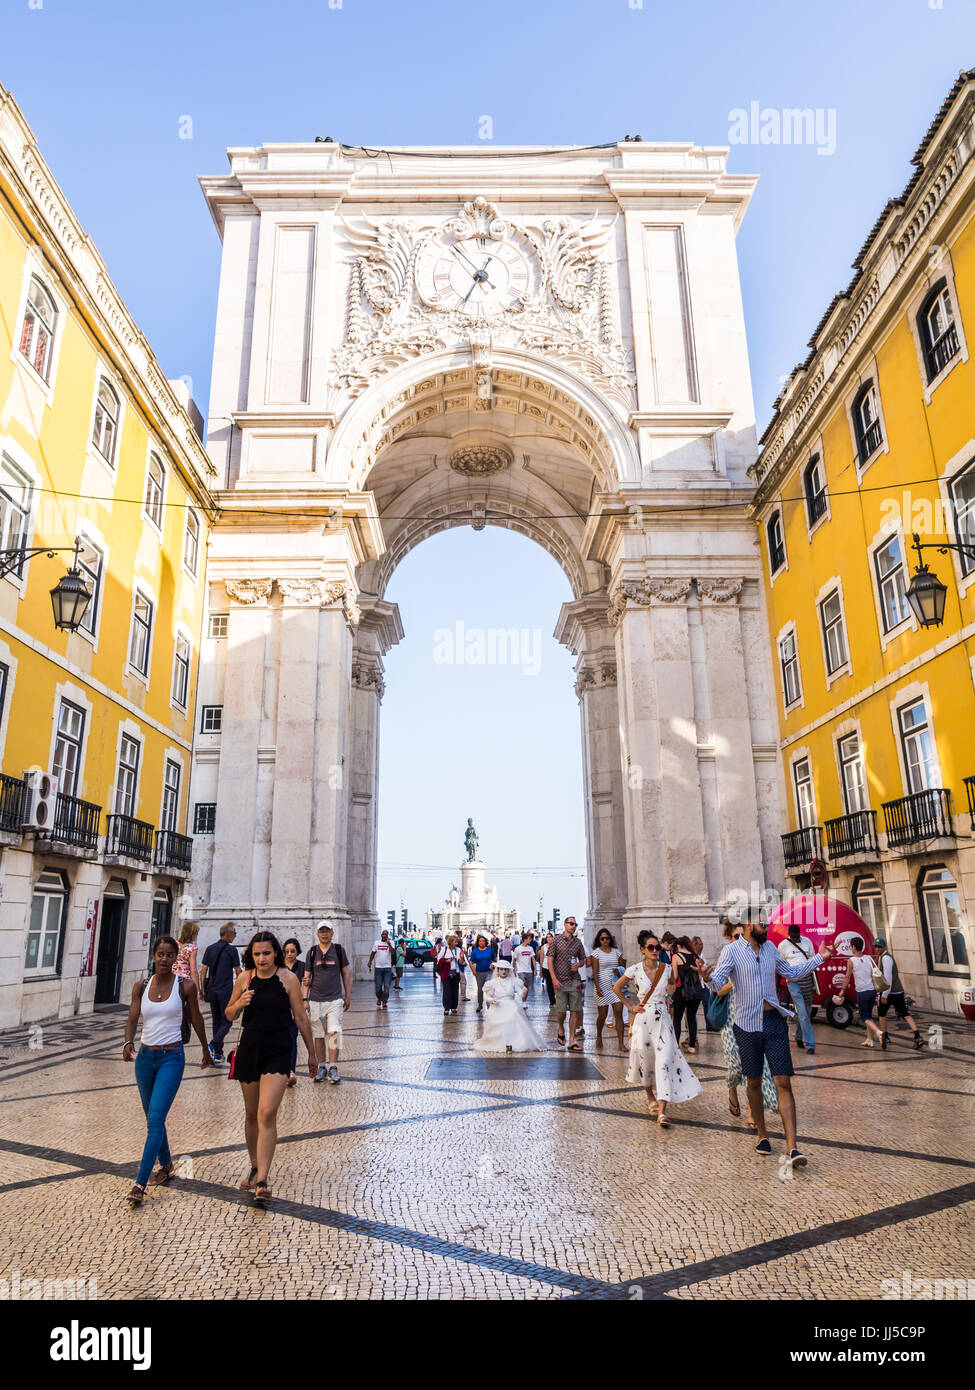 LISBON, PORTUGAL - JUNE 13, 2017: The Rua Augusta Arch, a triumphal arch-like, historical building in Lisbon, Portugal, - Stock Image